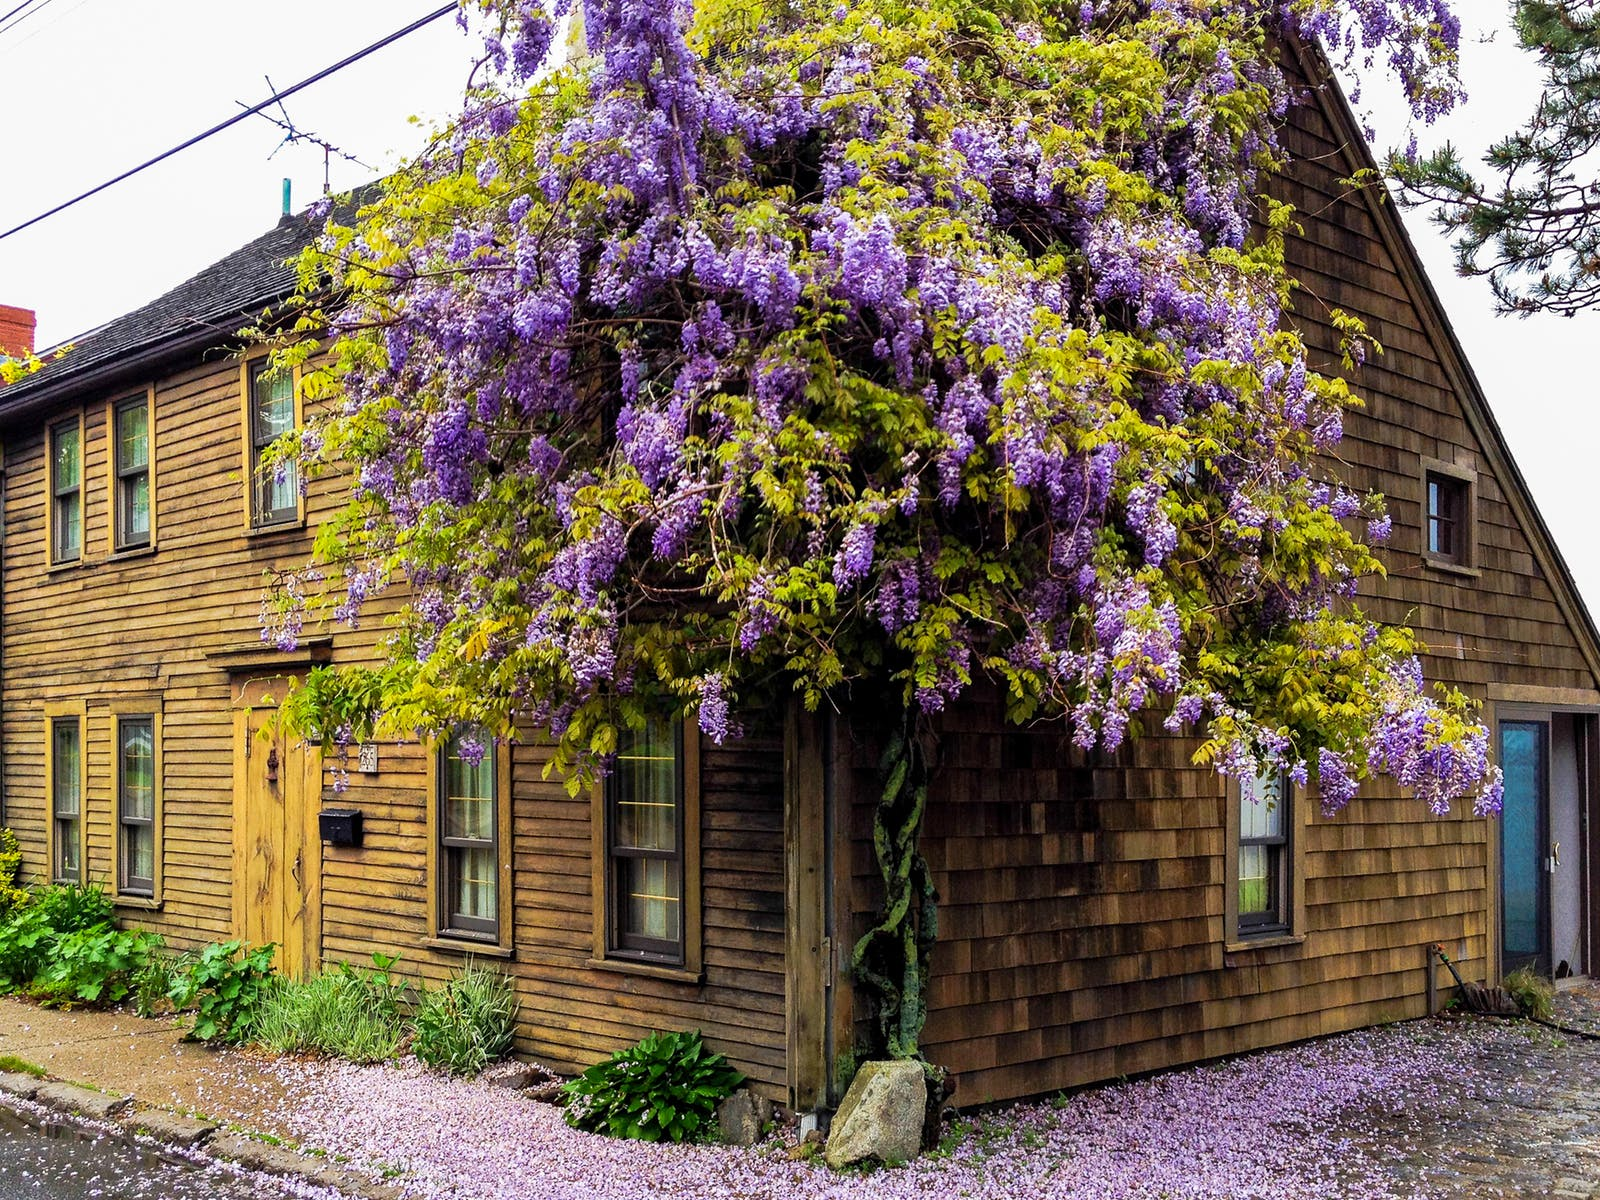 Newburyport, MA vacation rental with purple flowers on the exterior